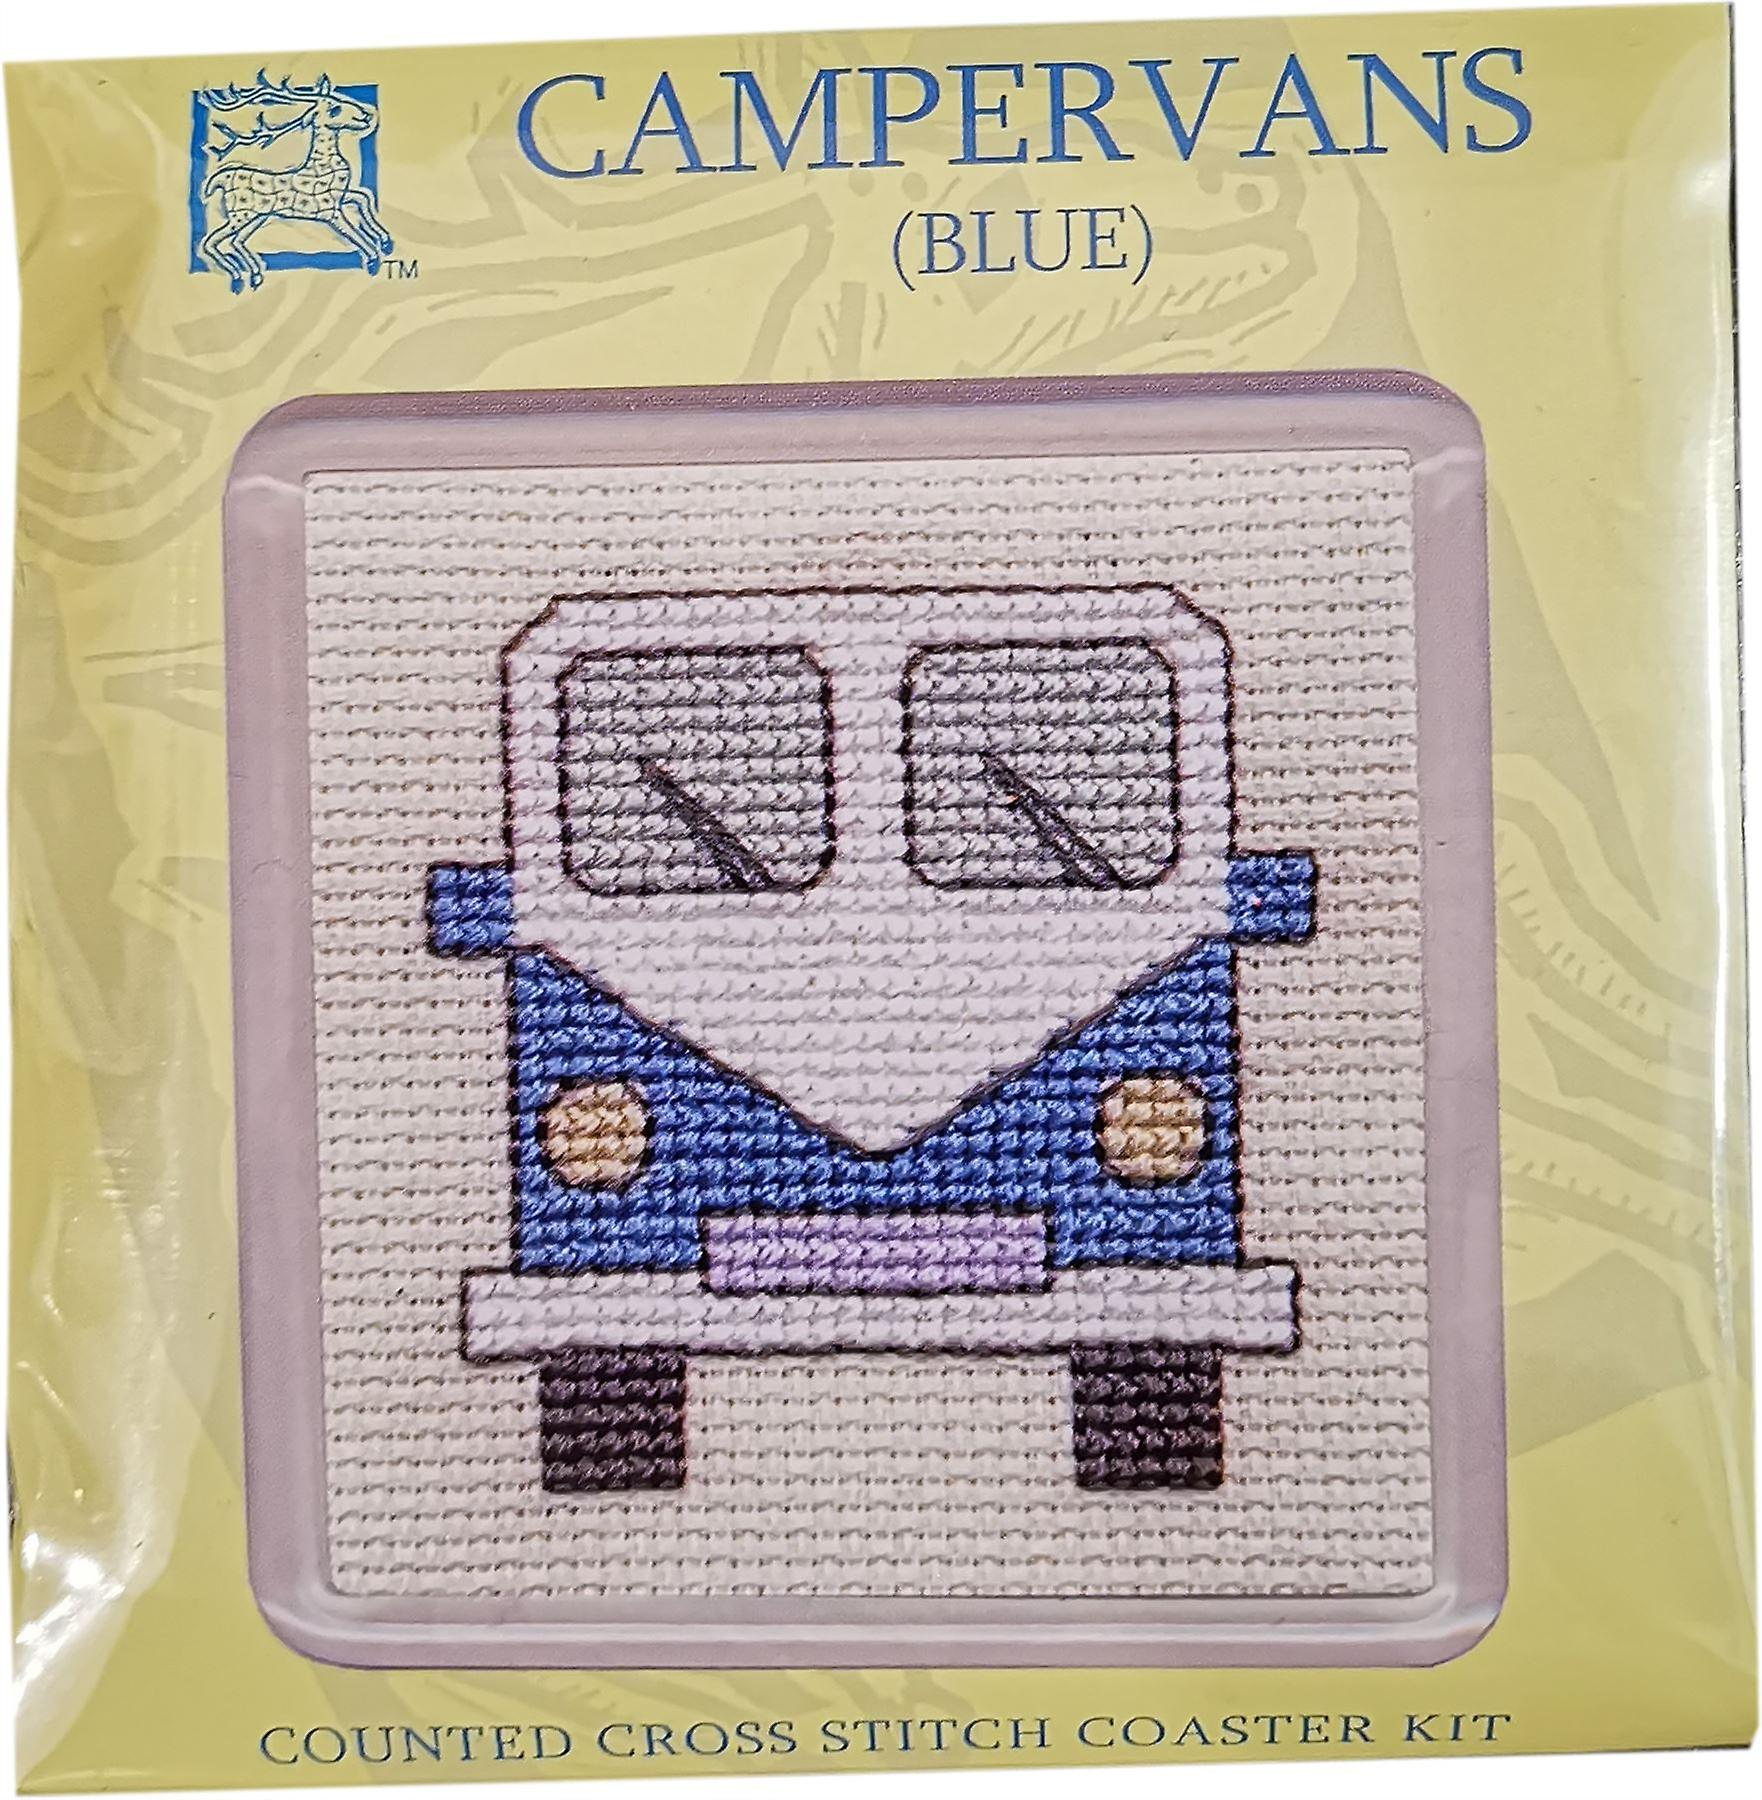 Textile Heritage Counted Cross Stitch Campervan Coaster Blue